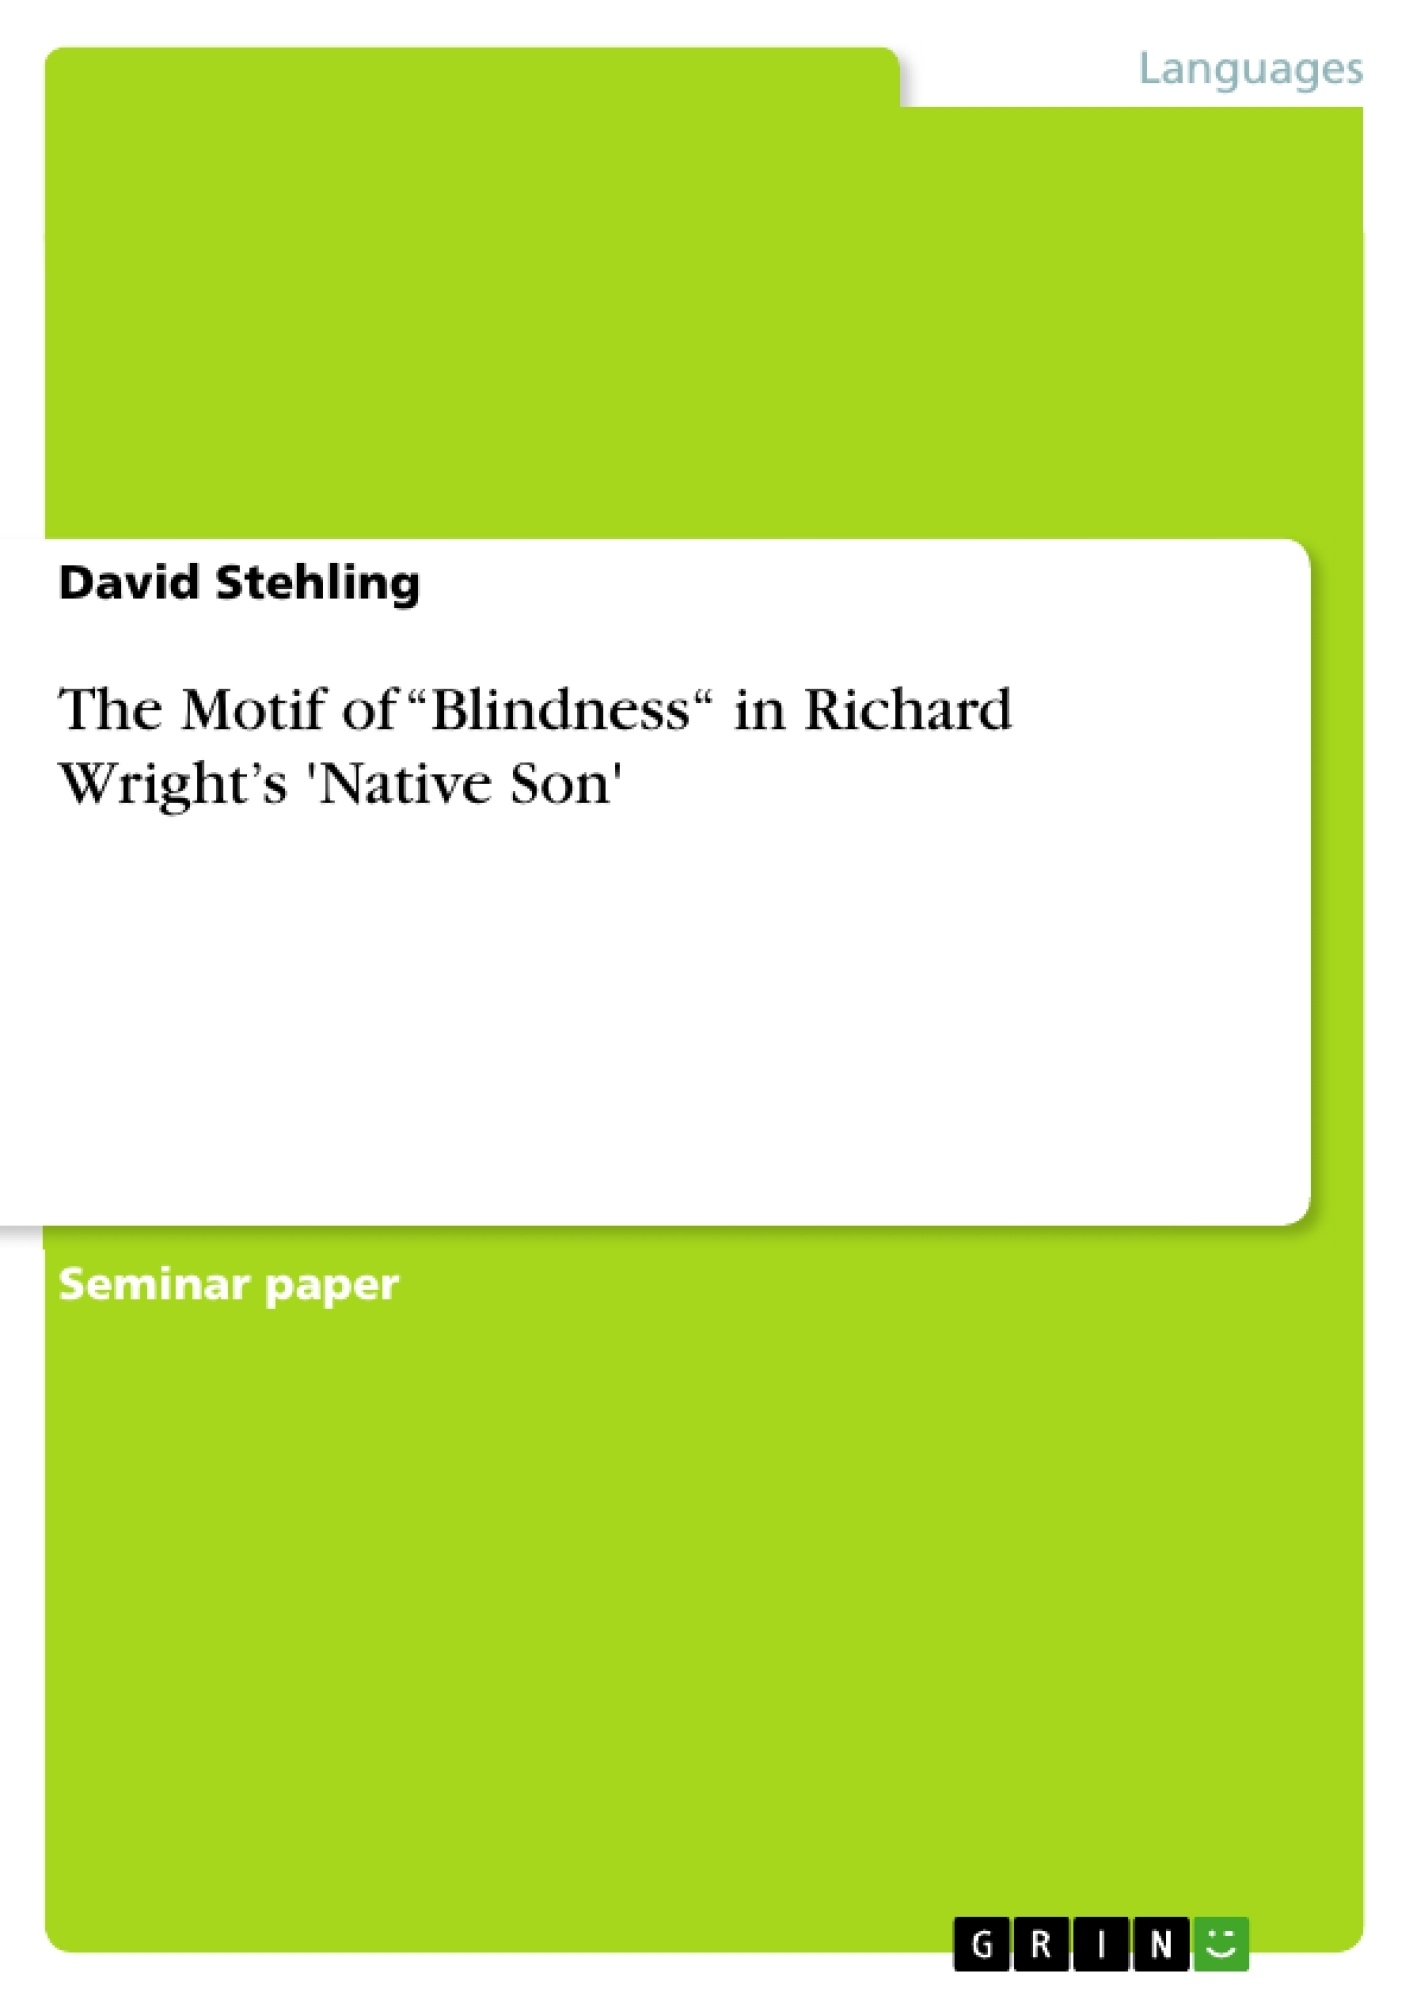 native son essay blindness essay the motif of blindness in richard wright 39 s native son